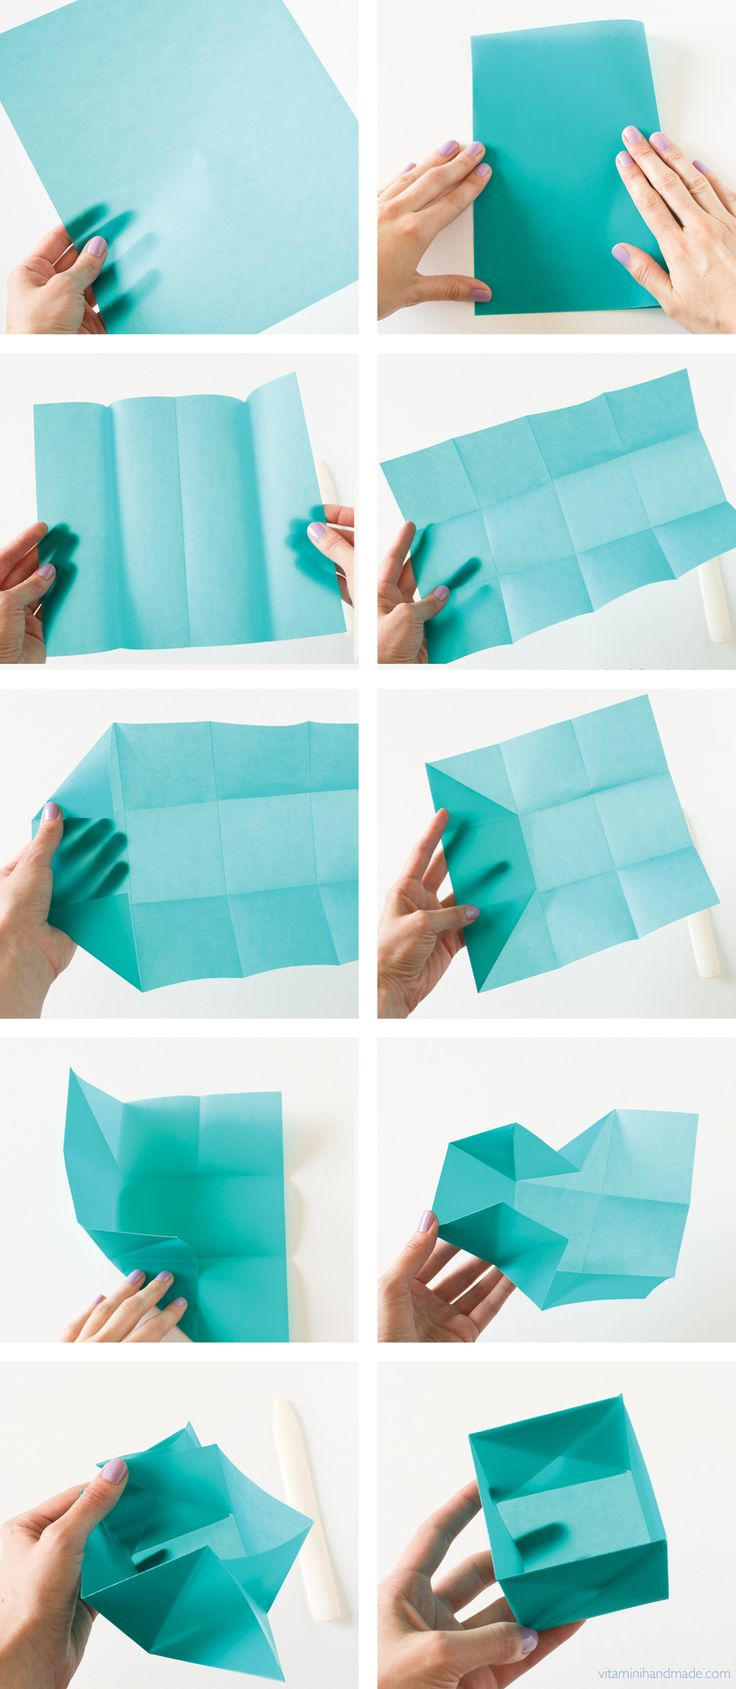 Box filled with newspaper clipart clip art library stock 17 Best ideas about Paper Boxes on Pinterest | Diy box, Paper box ... clip art library stock